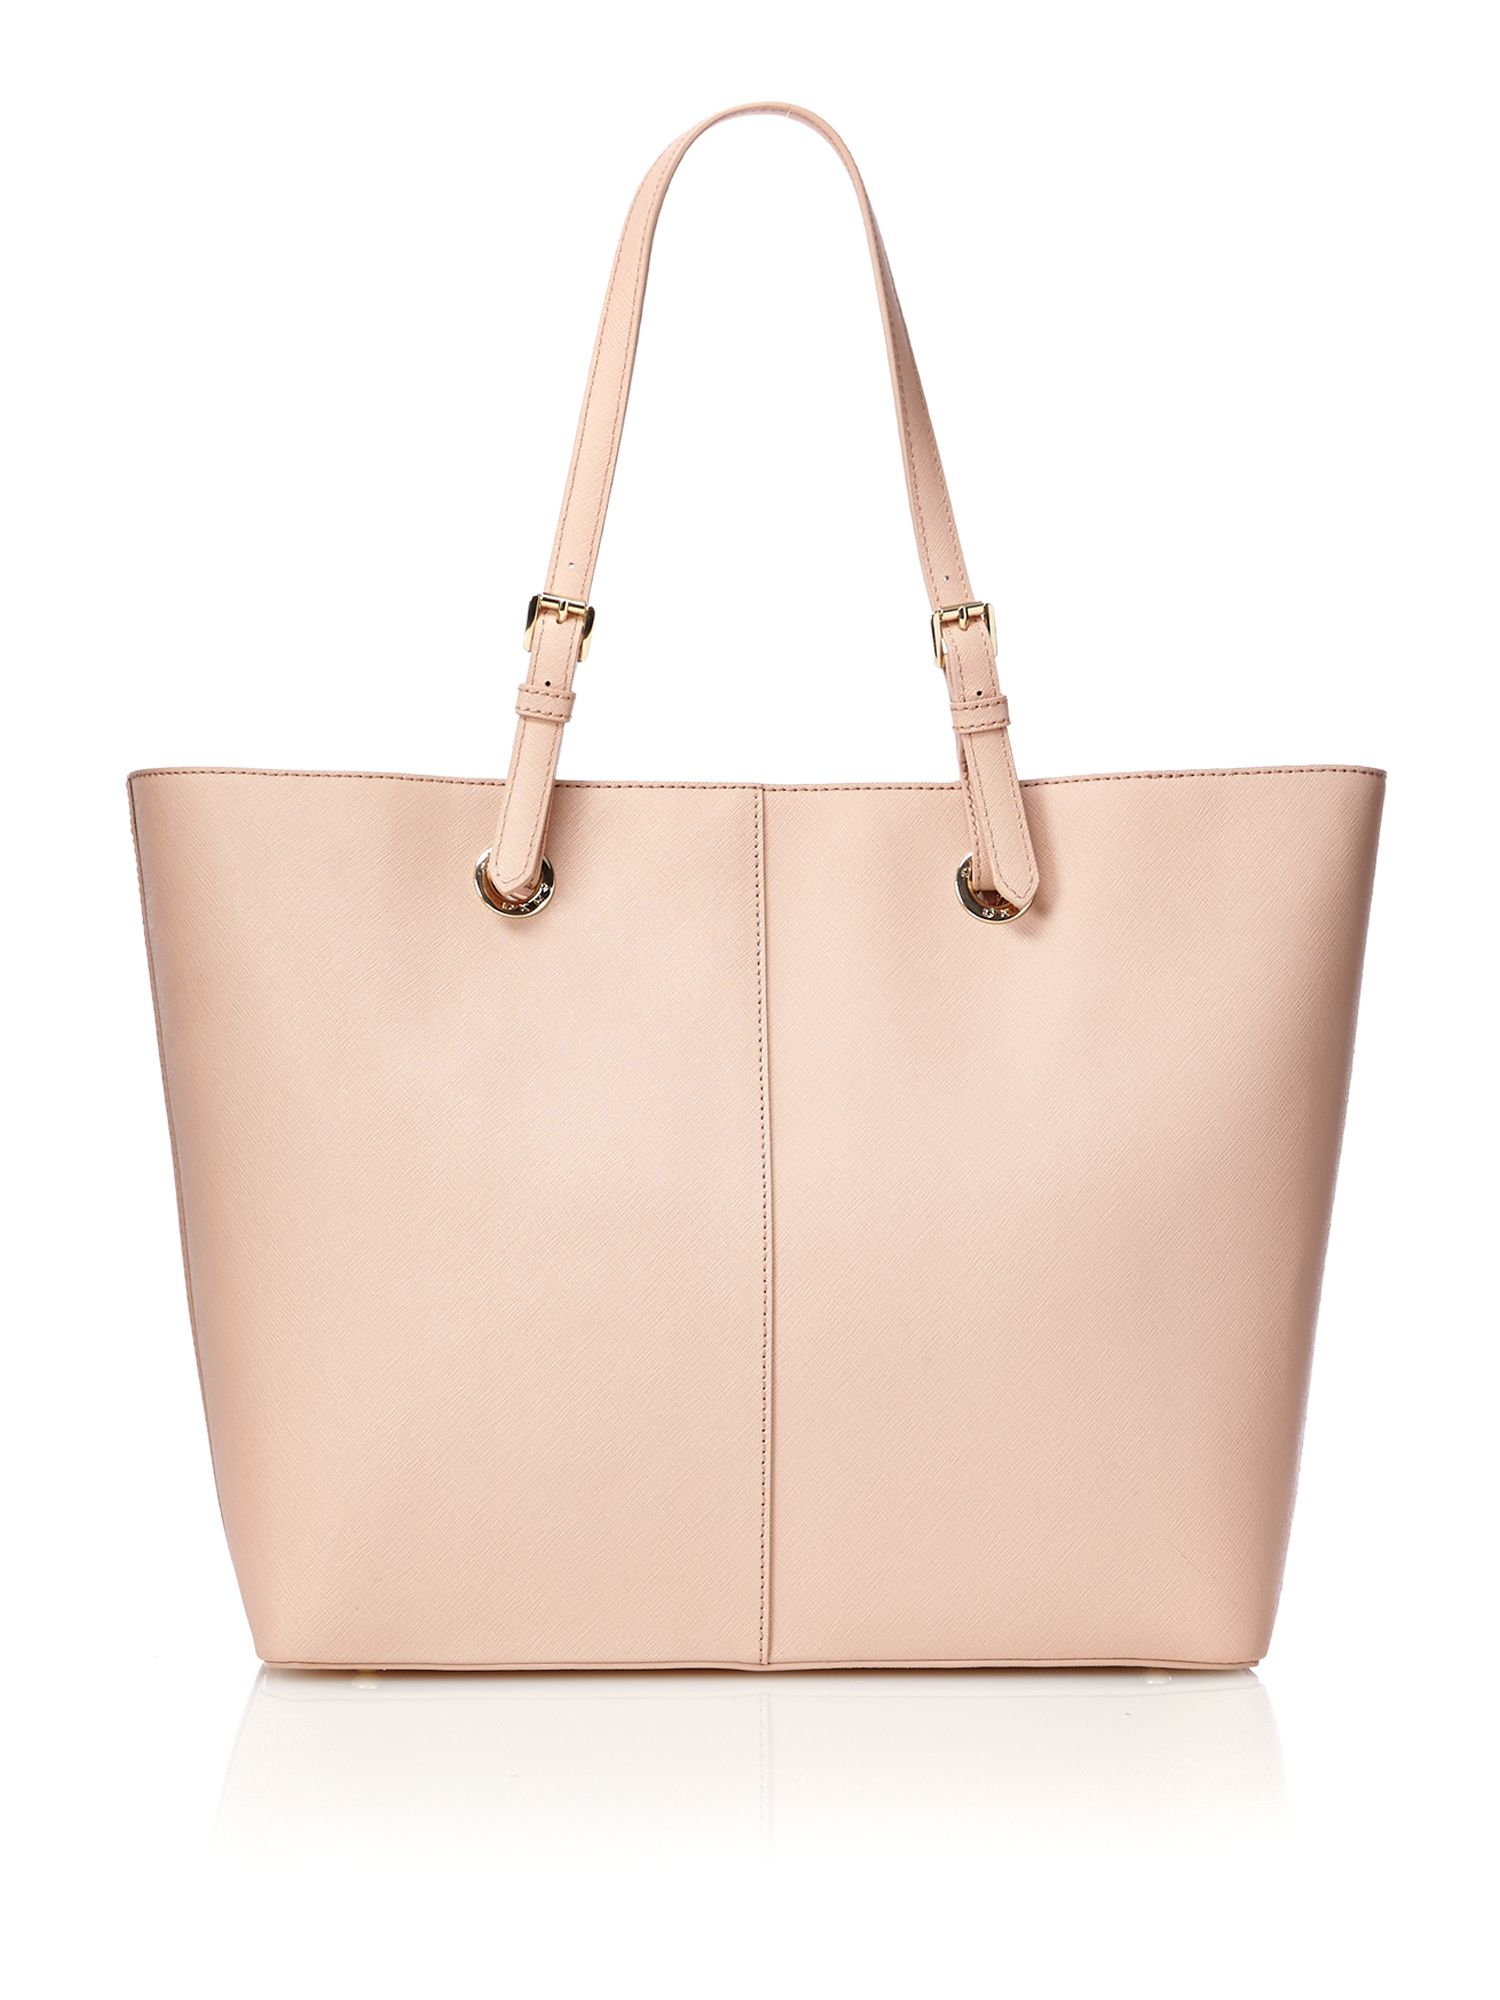 French grain pink shoulder bag